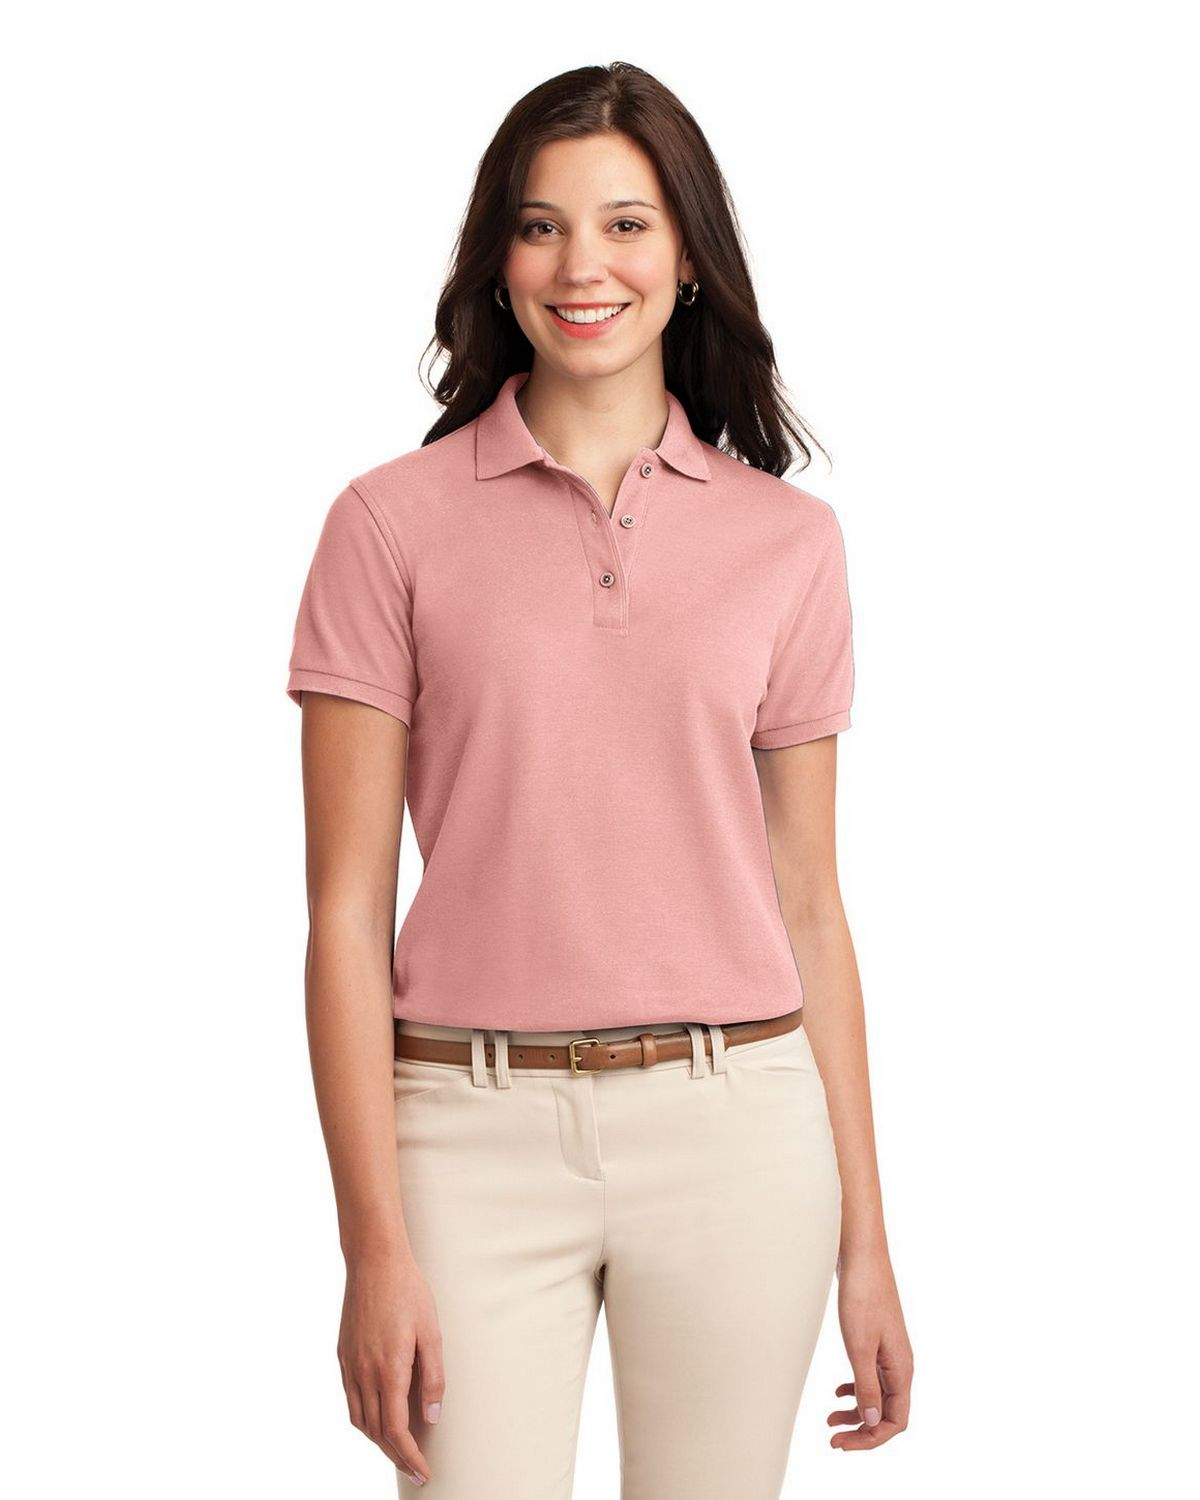 Port Authority L500 Women's Silk Touch Polo - Light Pink - XS #silk